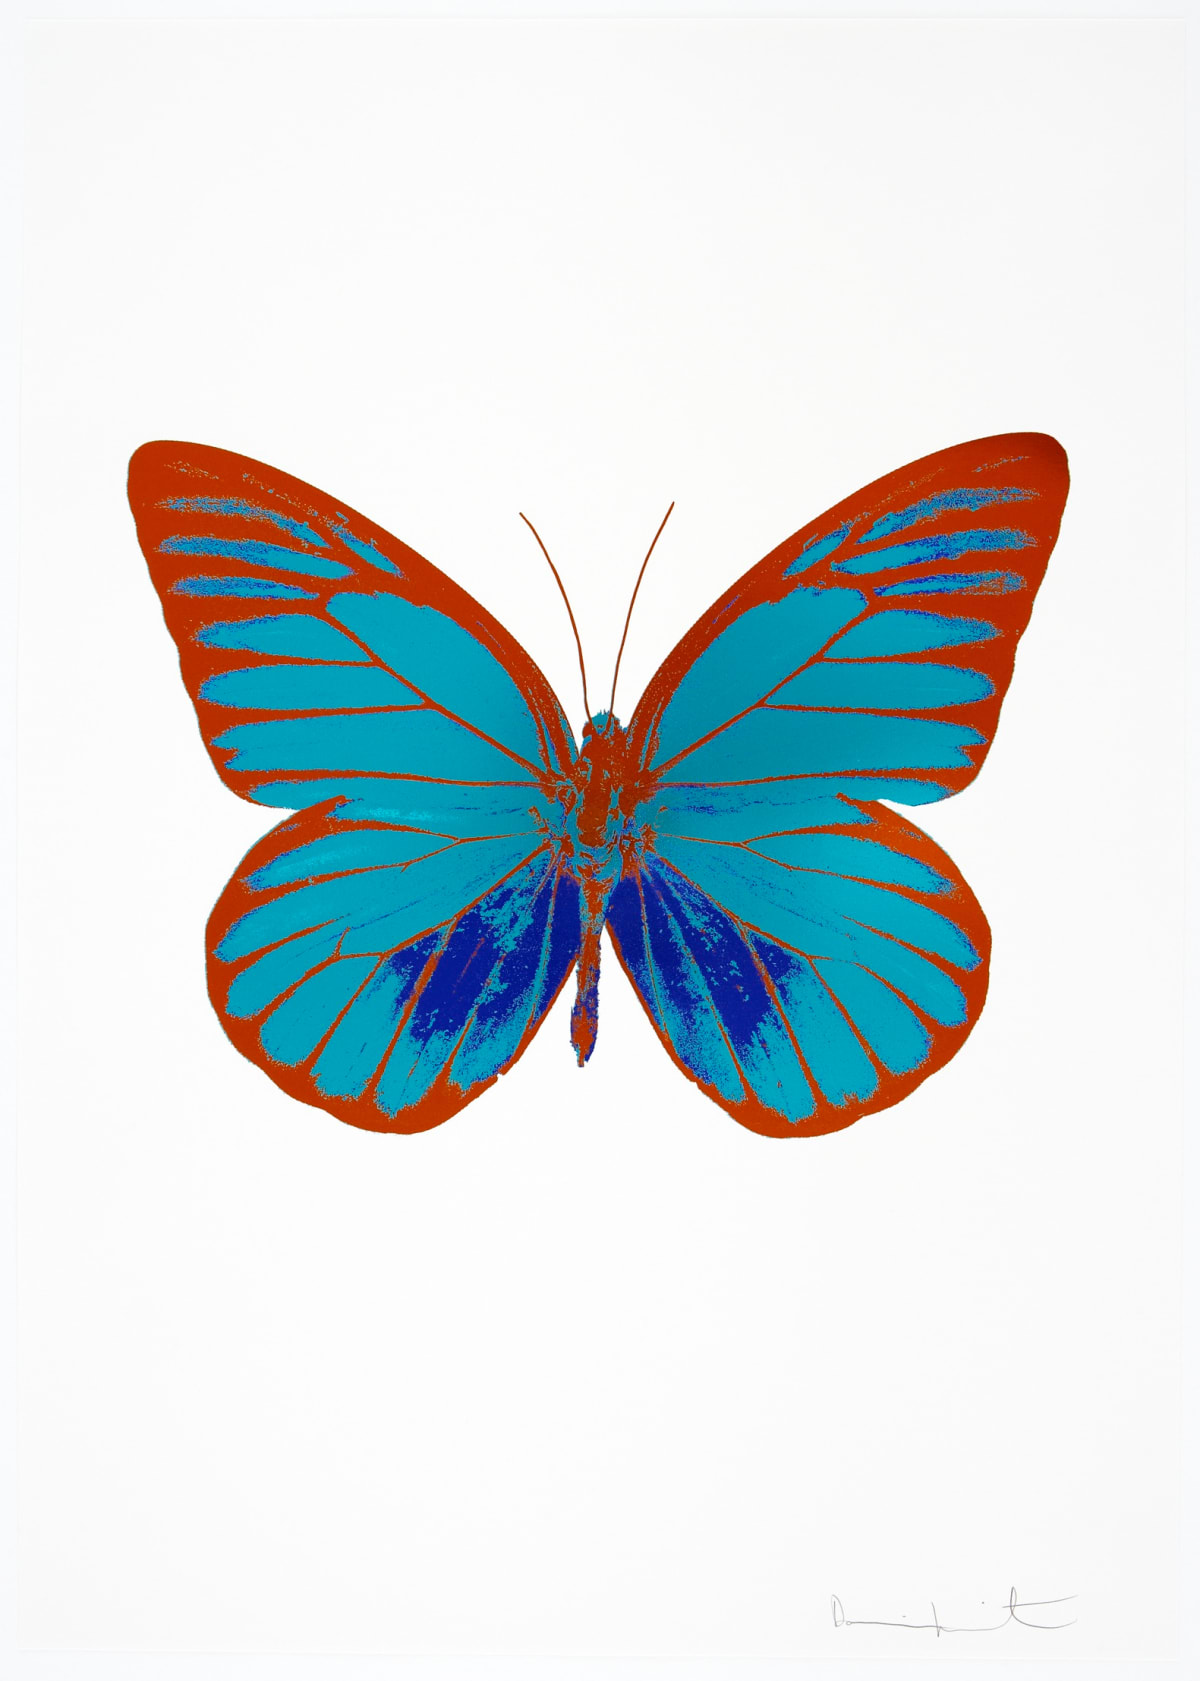 Damien Hirst The Souls I - Topaz/Westminster Blue/Prairie Copper, 2010 3 colour foil block on 300gsm Arches 88 archival paper. Signed and numbered. Published by Paul Stolper and Other Criteria 72 x 51cm OC7816 / 659-79 Edition of 15